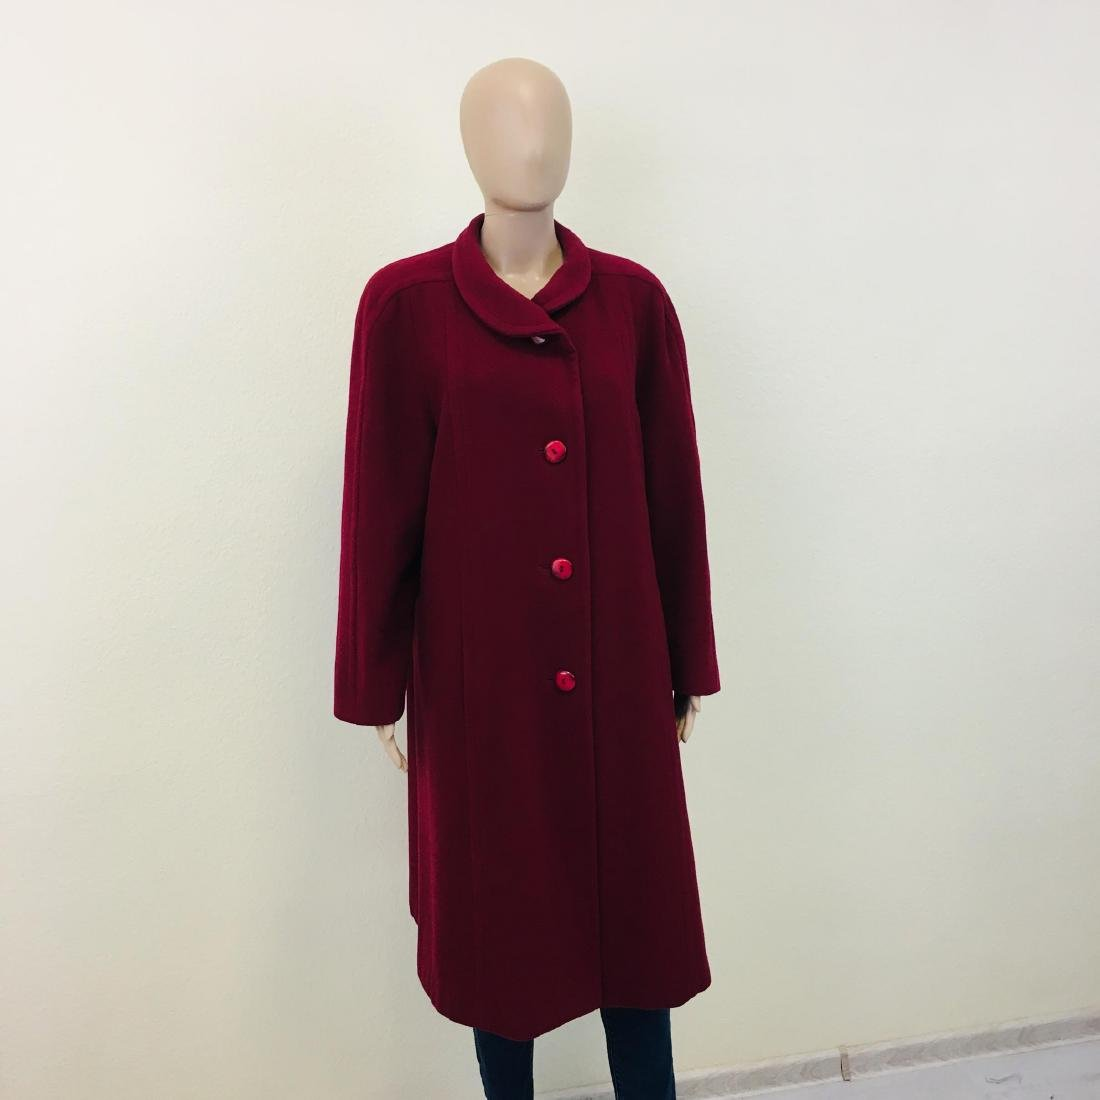 Women's Strowenz Designer Wool Blend Long Coat - 2